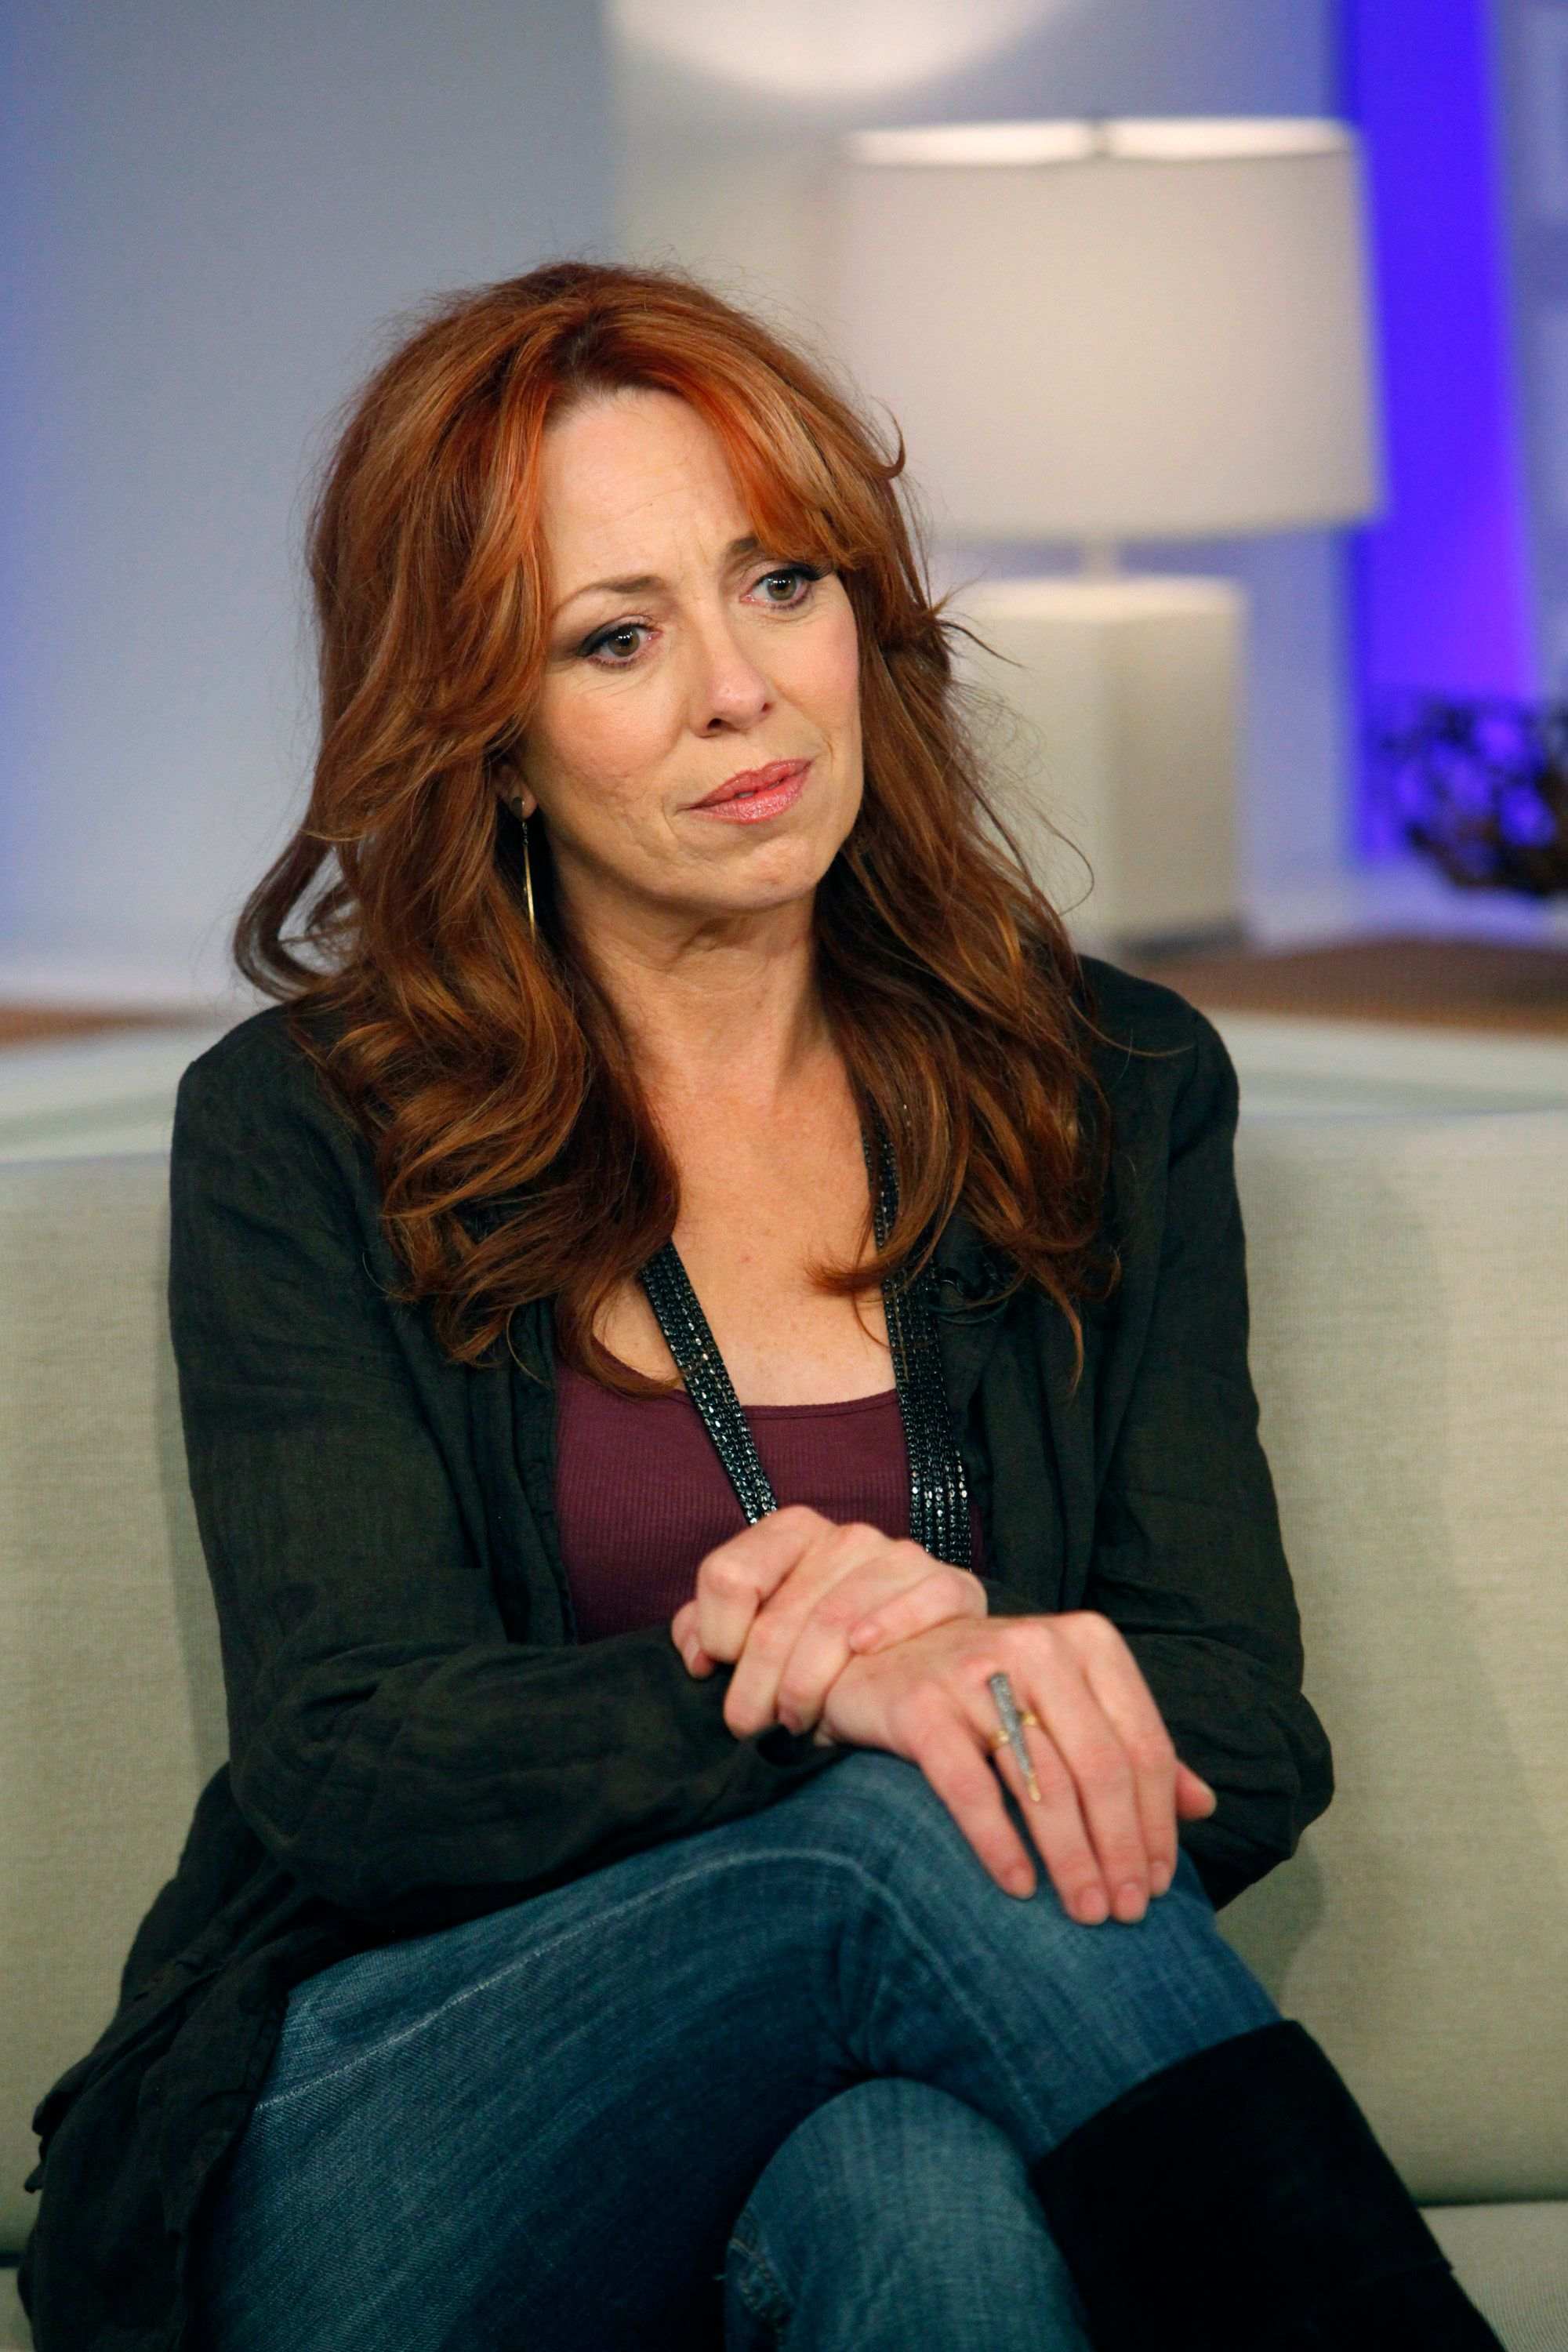 TODAY -- Pictured: Mackenzie Phillips -- NBC News' Meredith Vieira talks to actress Mackenzie Phillips about her long-standing relationship with her father, her struggle with drug addiction and other details revealed in her new memoir 'High on Arrival'  (Photo by Virginia Sherwood/NBC/NBCU Photo Bank via Getty Images)